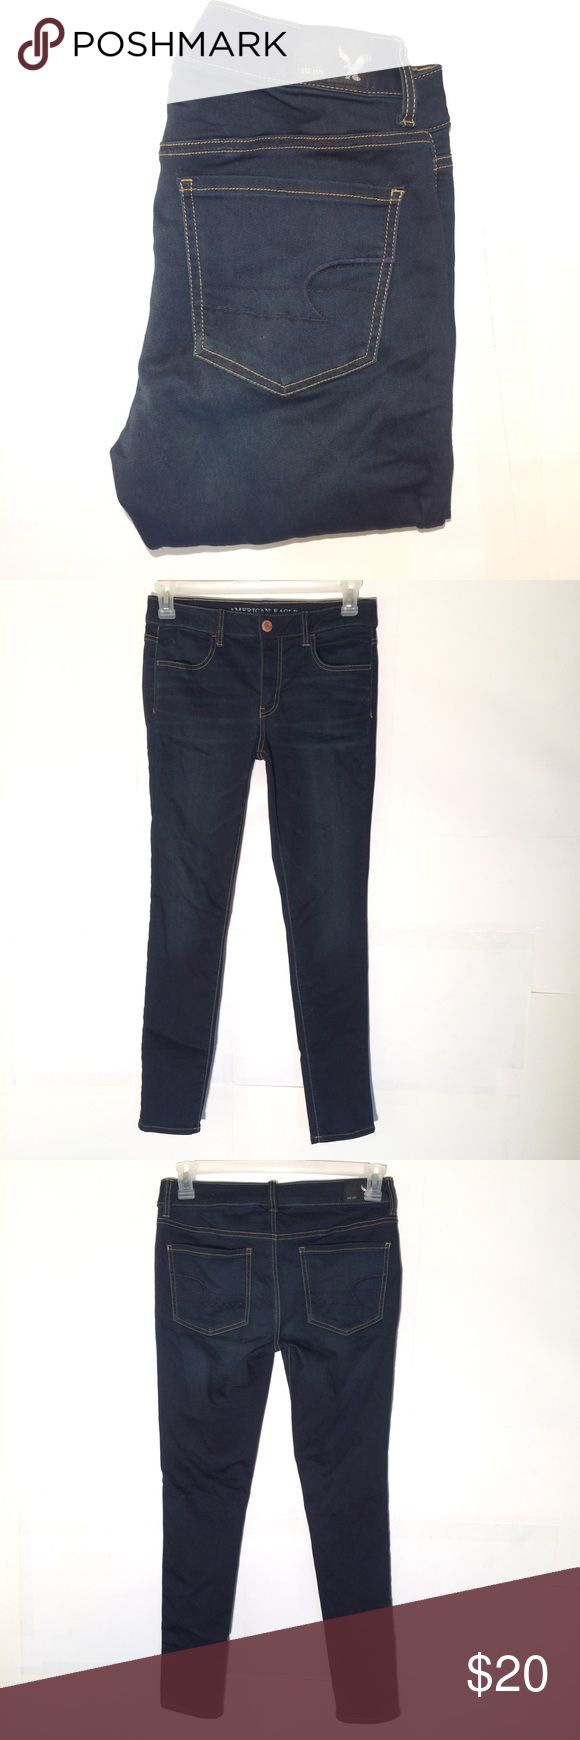 """American eagle jegging stretch jeans size 10 American eagle jegging stretch jeans. Ladies size 10. Excellent condition. 58% cotton 48% polyester and 2% spandex. No rips stains or tears. Actual measurements are:  Waist 31"""" Inseam 29"""" Rise 9"""" Thanks American Eagle Outfitters Jeans Skinny"""